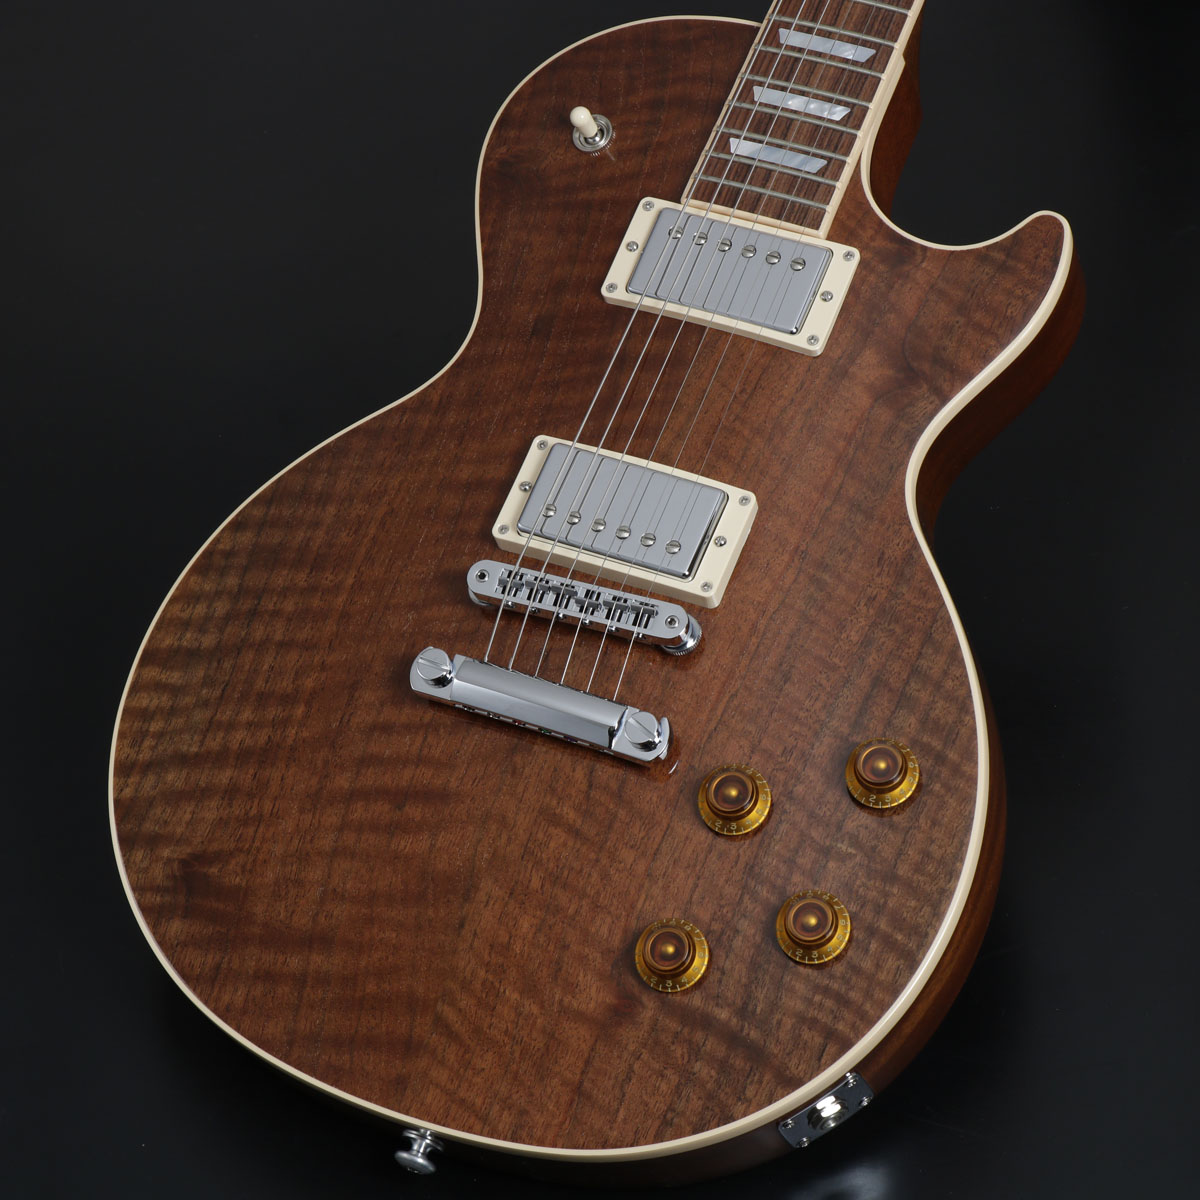 Gibson / 2016 Limited Run Les Paul Standard Figured Walnut Natural【アウトレット特価】【S/N 160019423】【御茶ノ水本店】